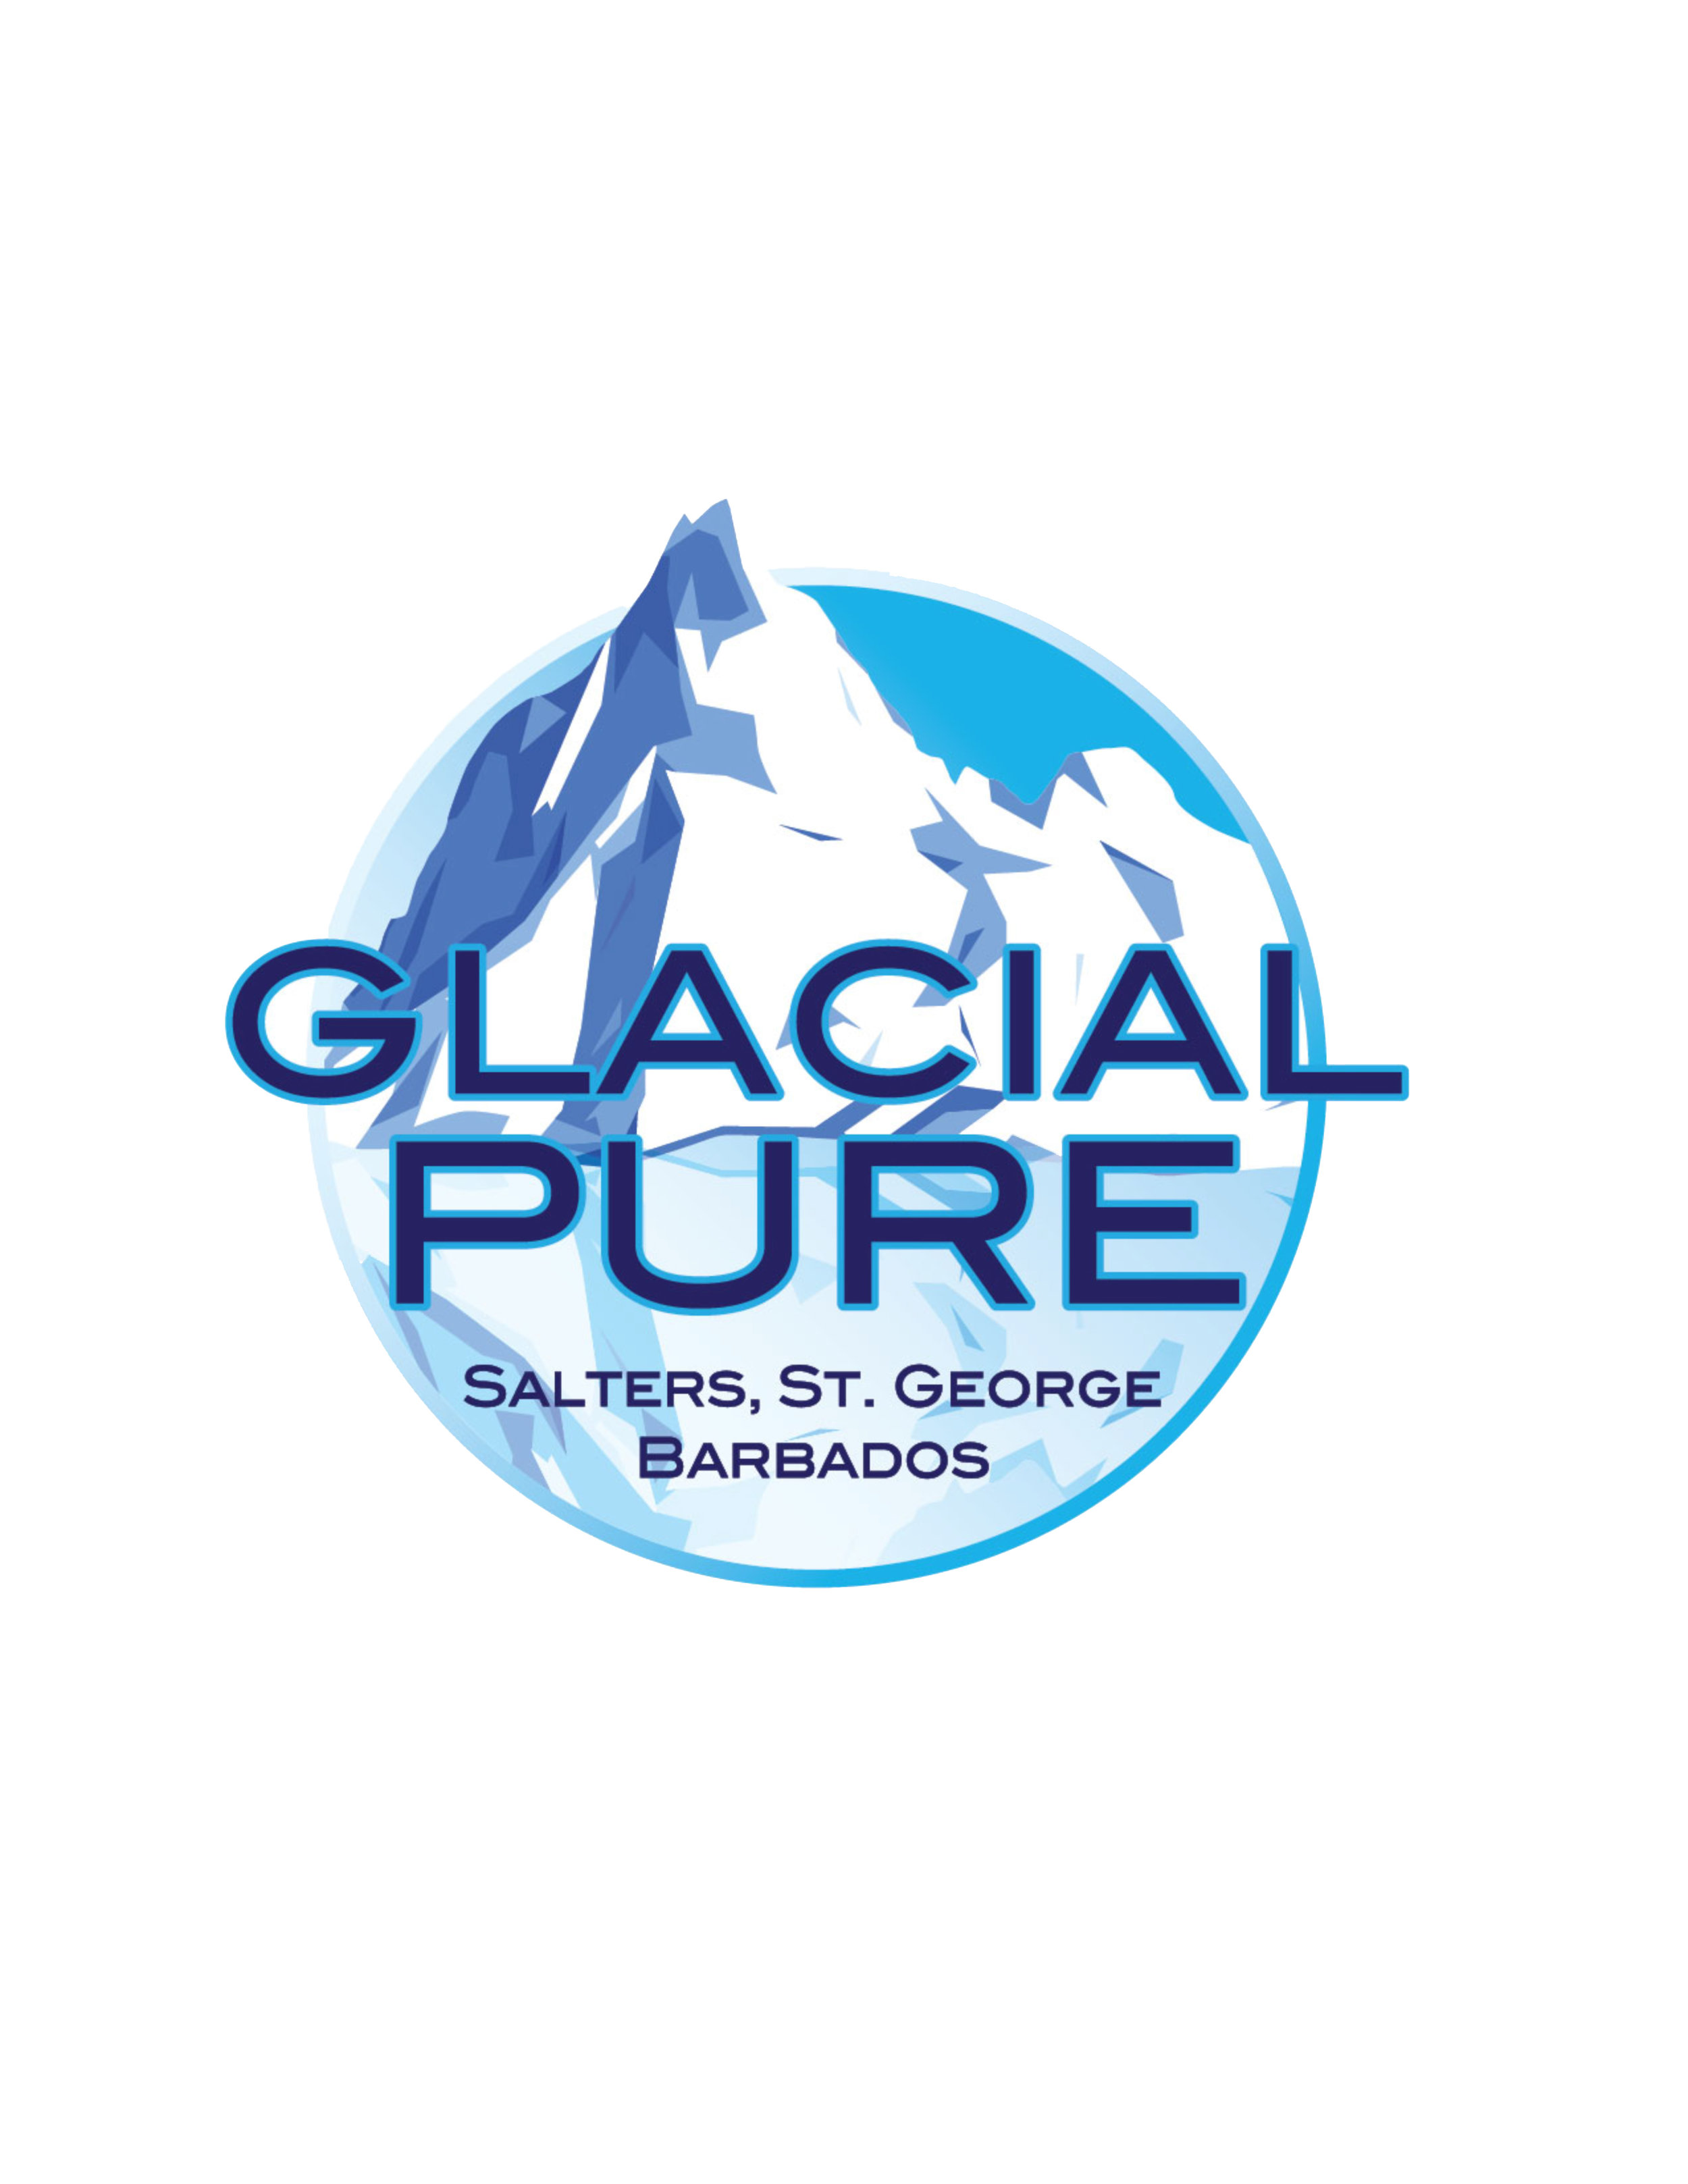 Glacial Pure is the island's leading distributor of party ice and purified bottled water.